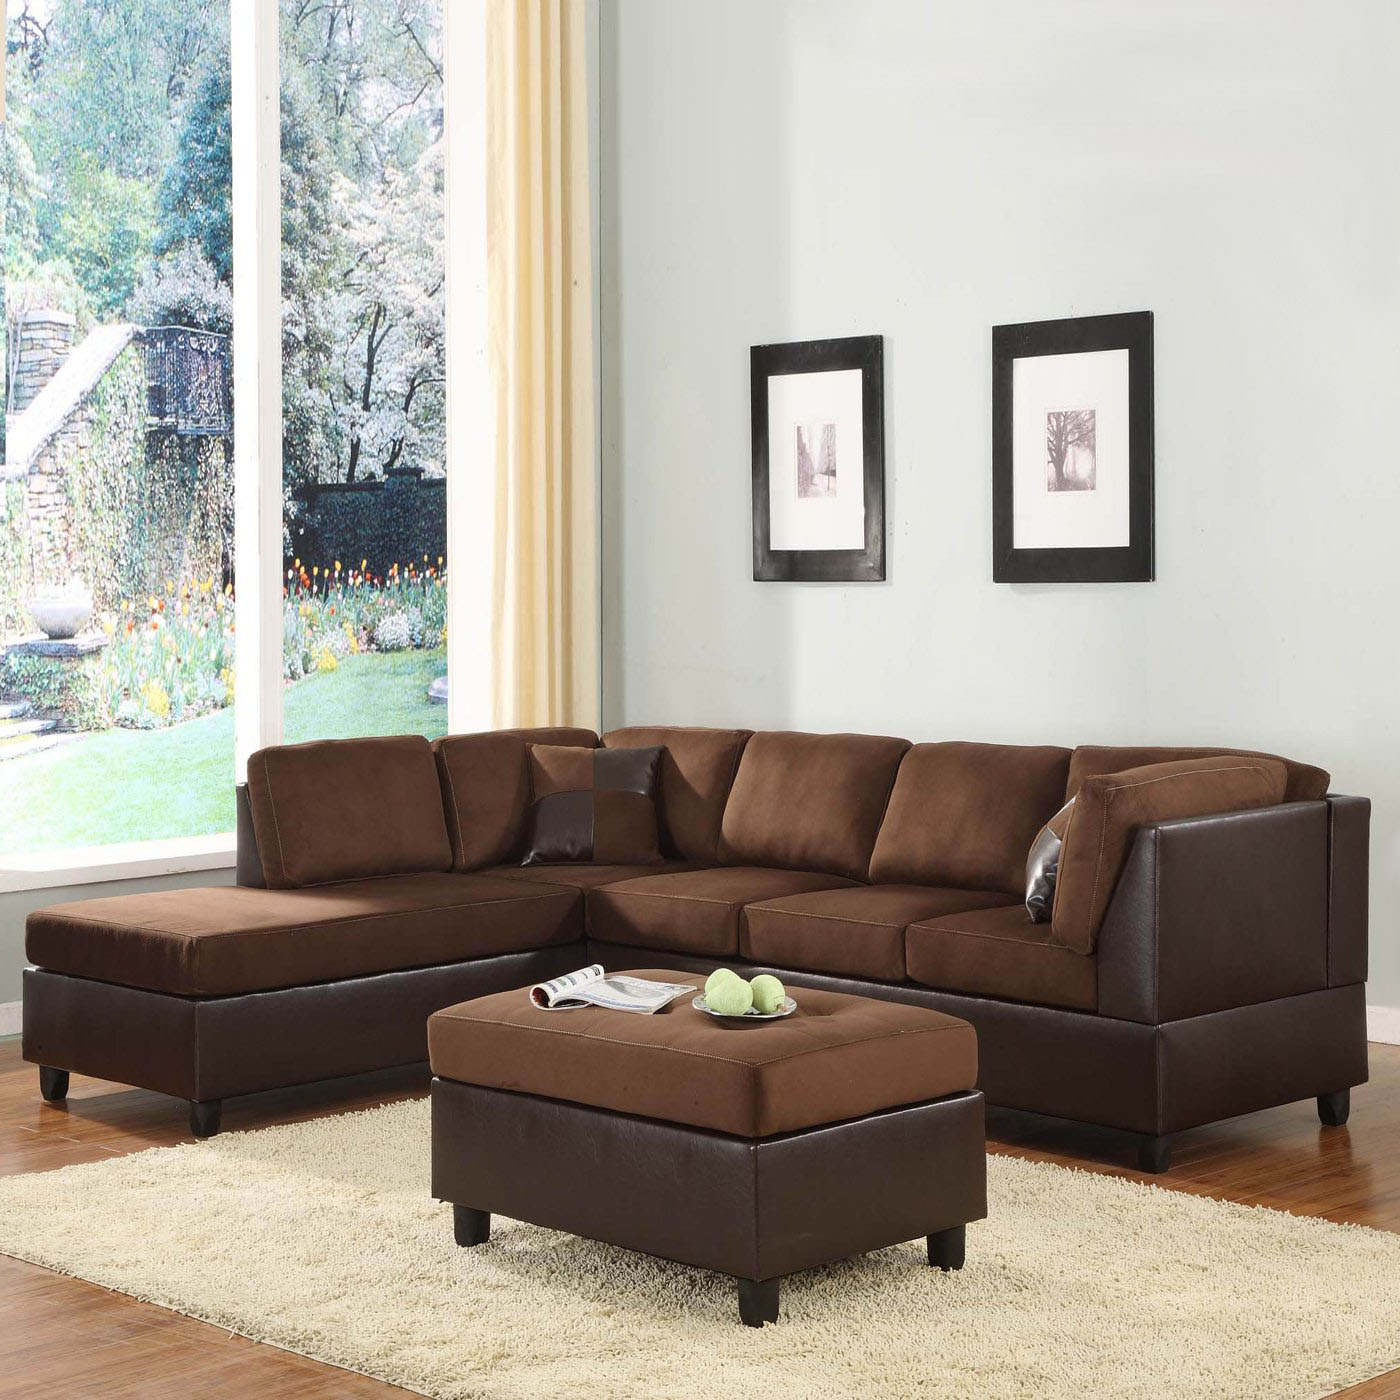 Homelegance comfort living 2 piece sectional living room for 3 piece living room set cheap